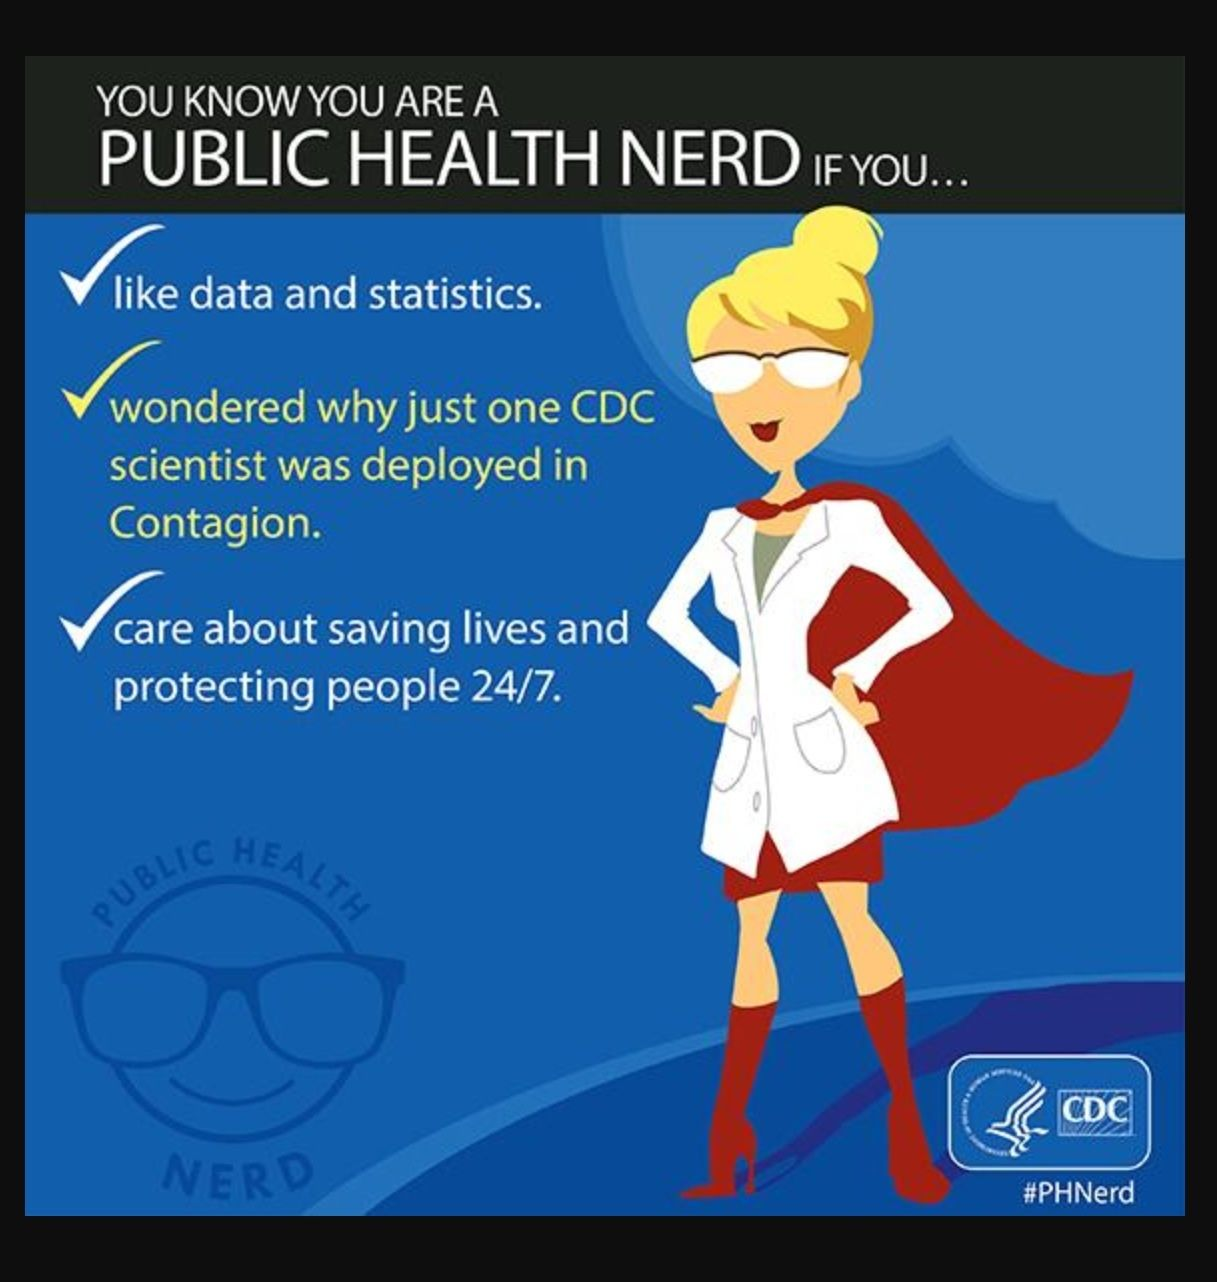 Passionate about public health? [GRAPHIC] RT to let your